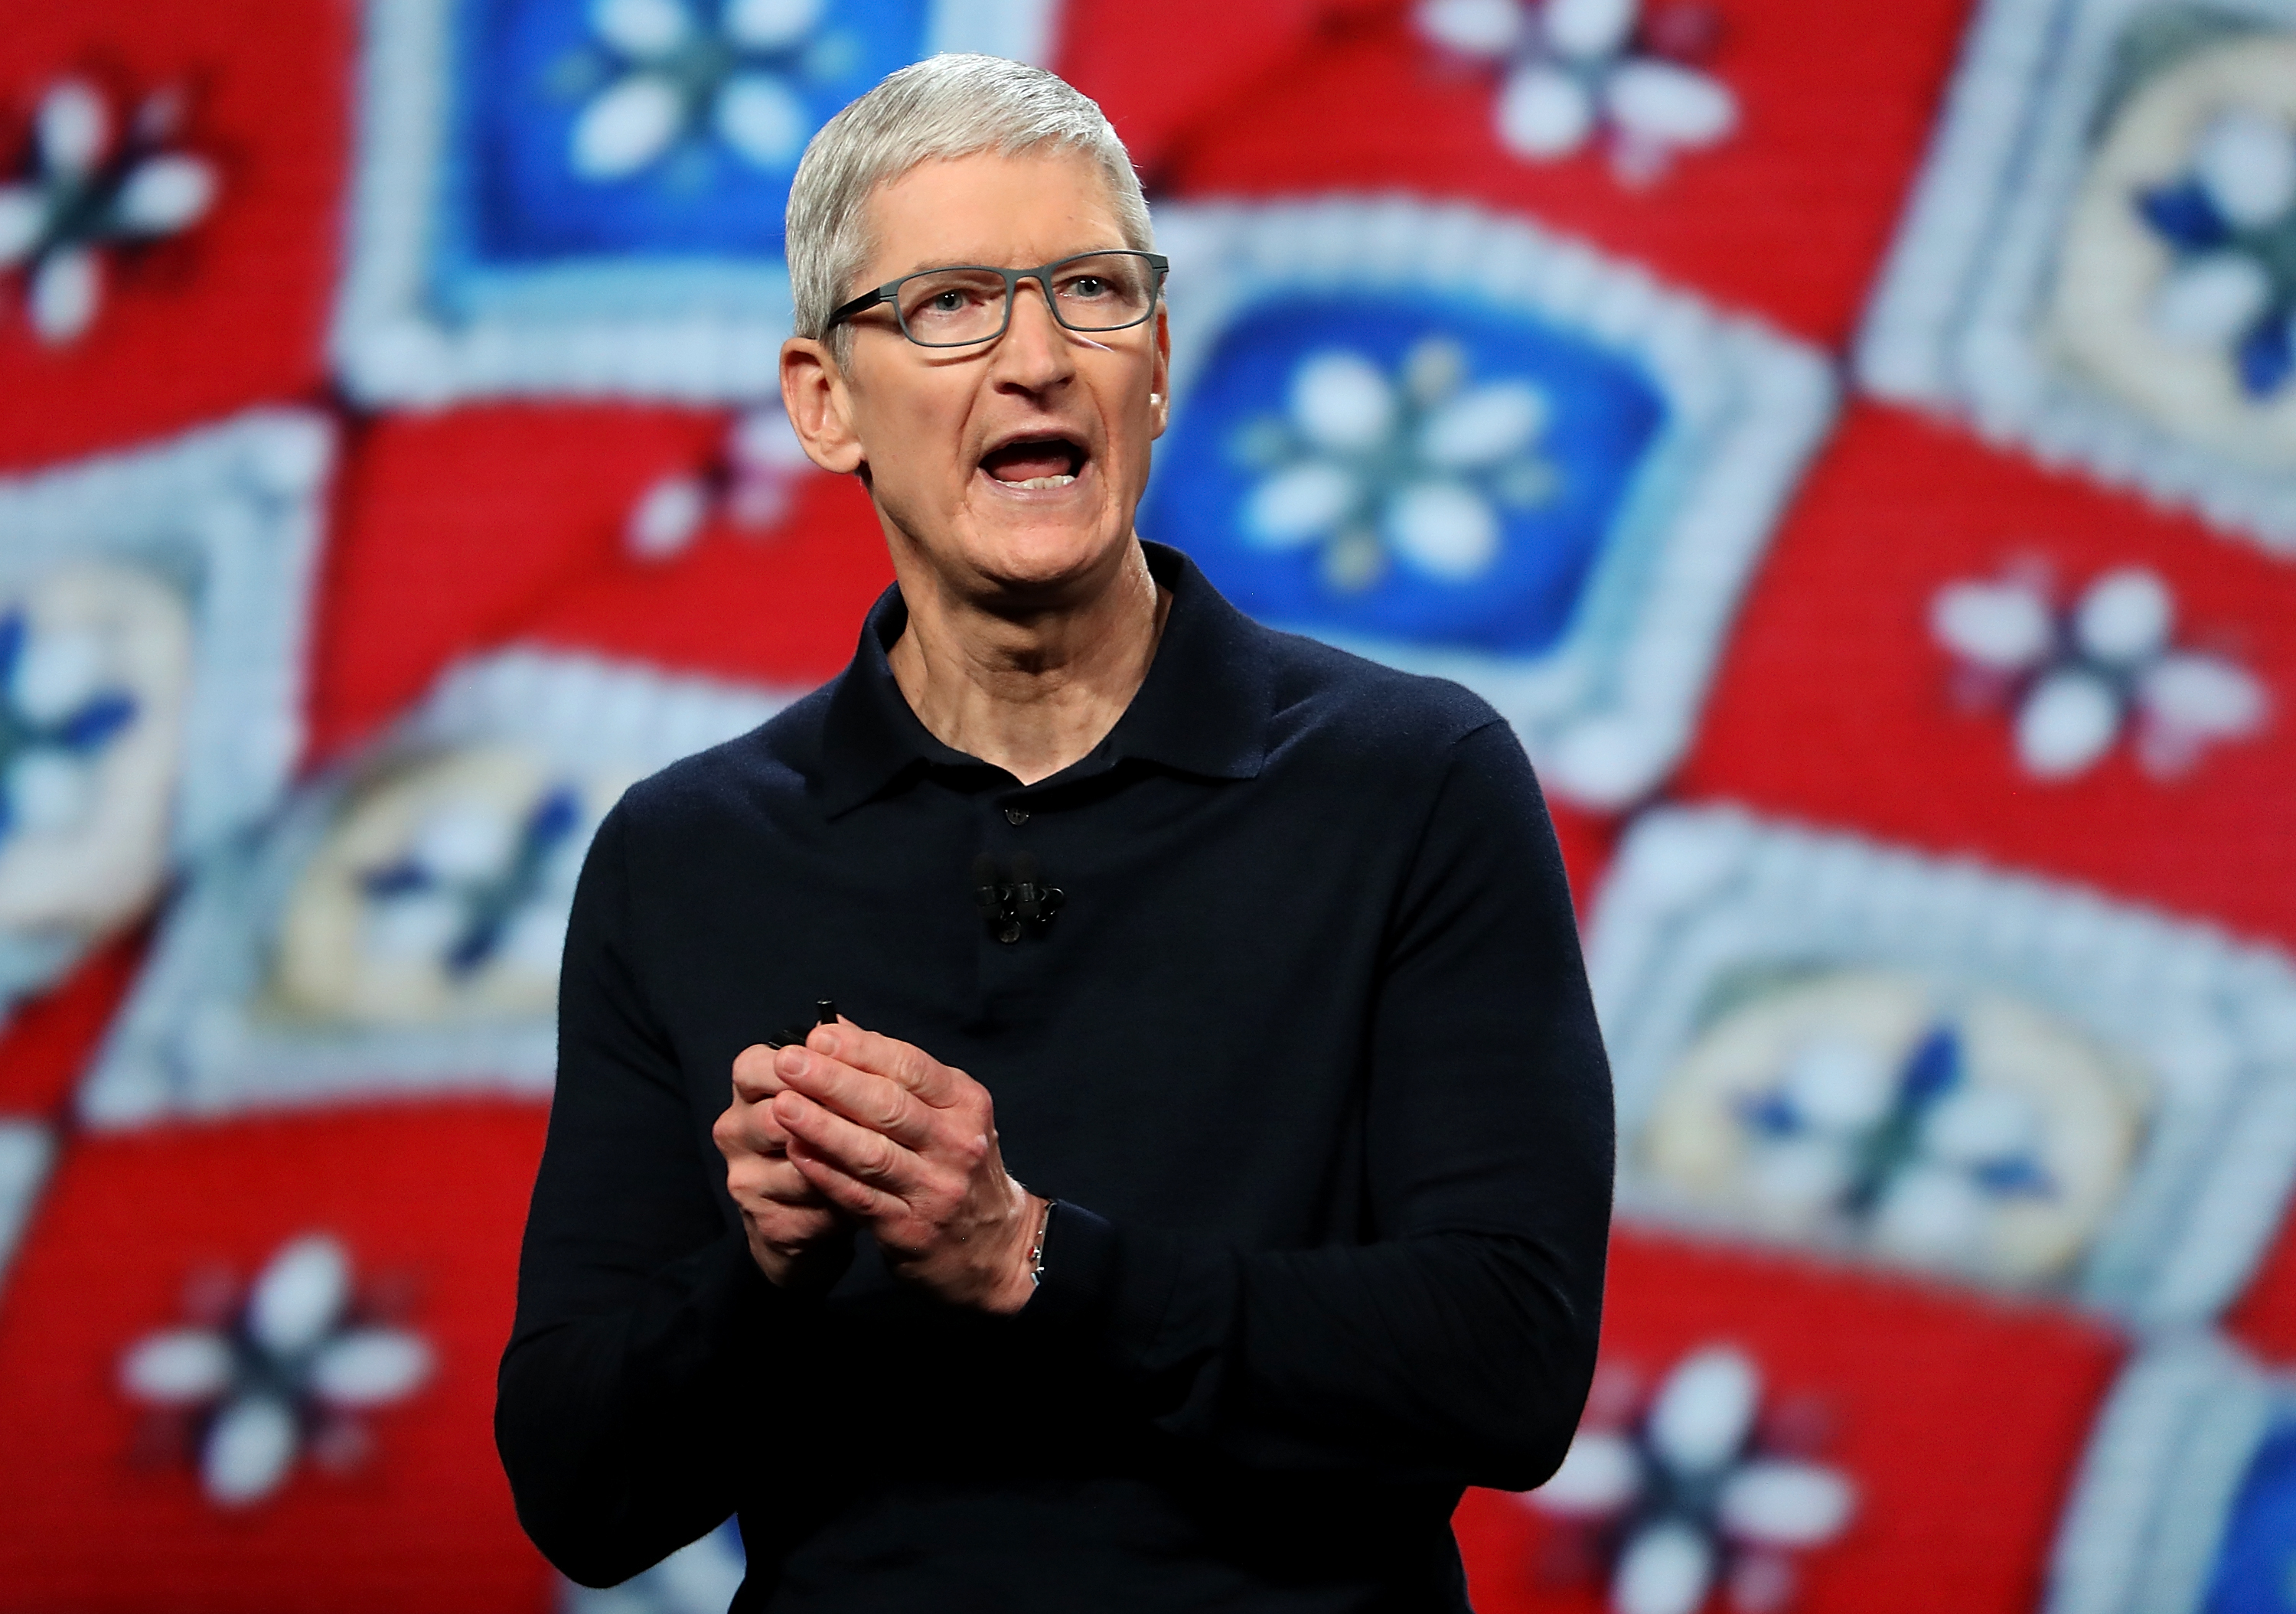 The Energy and Commerce Committee sent letters to Apple CEO Tim Cook and Alphabet CEO Larry Page asking them to explain data collection practices.